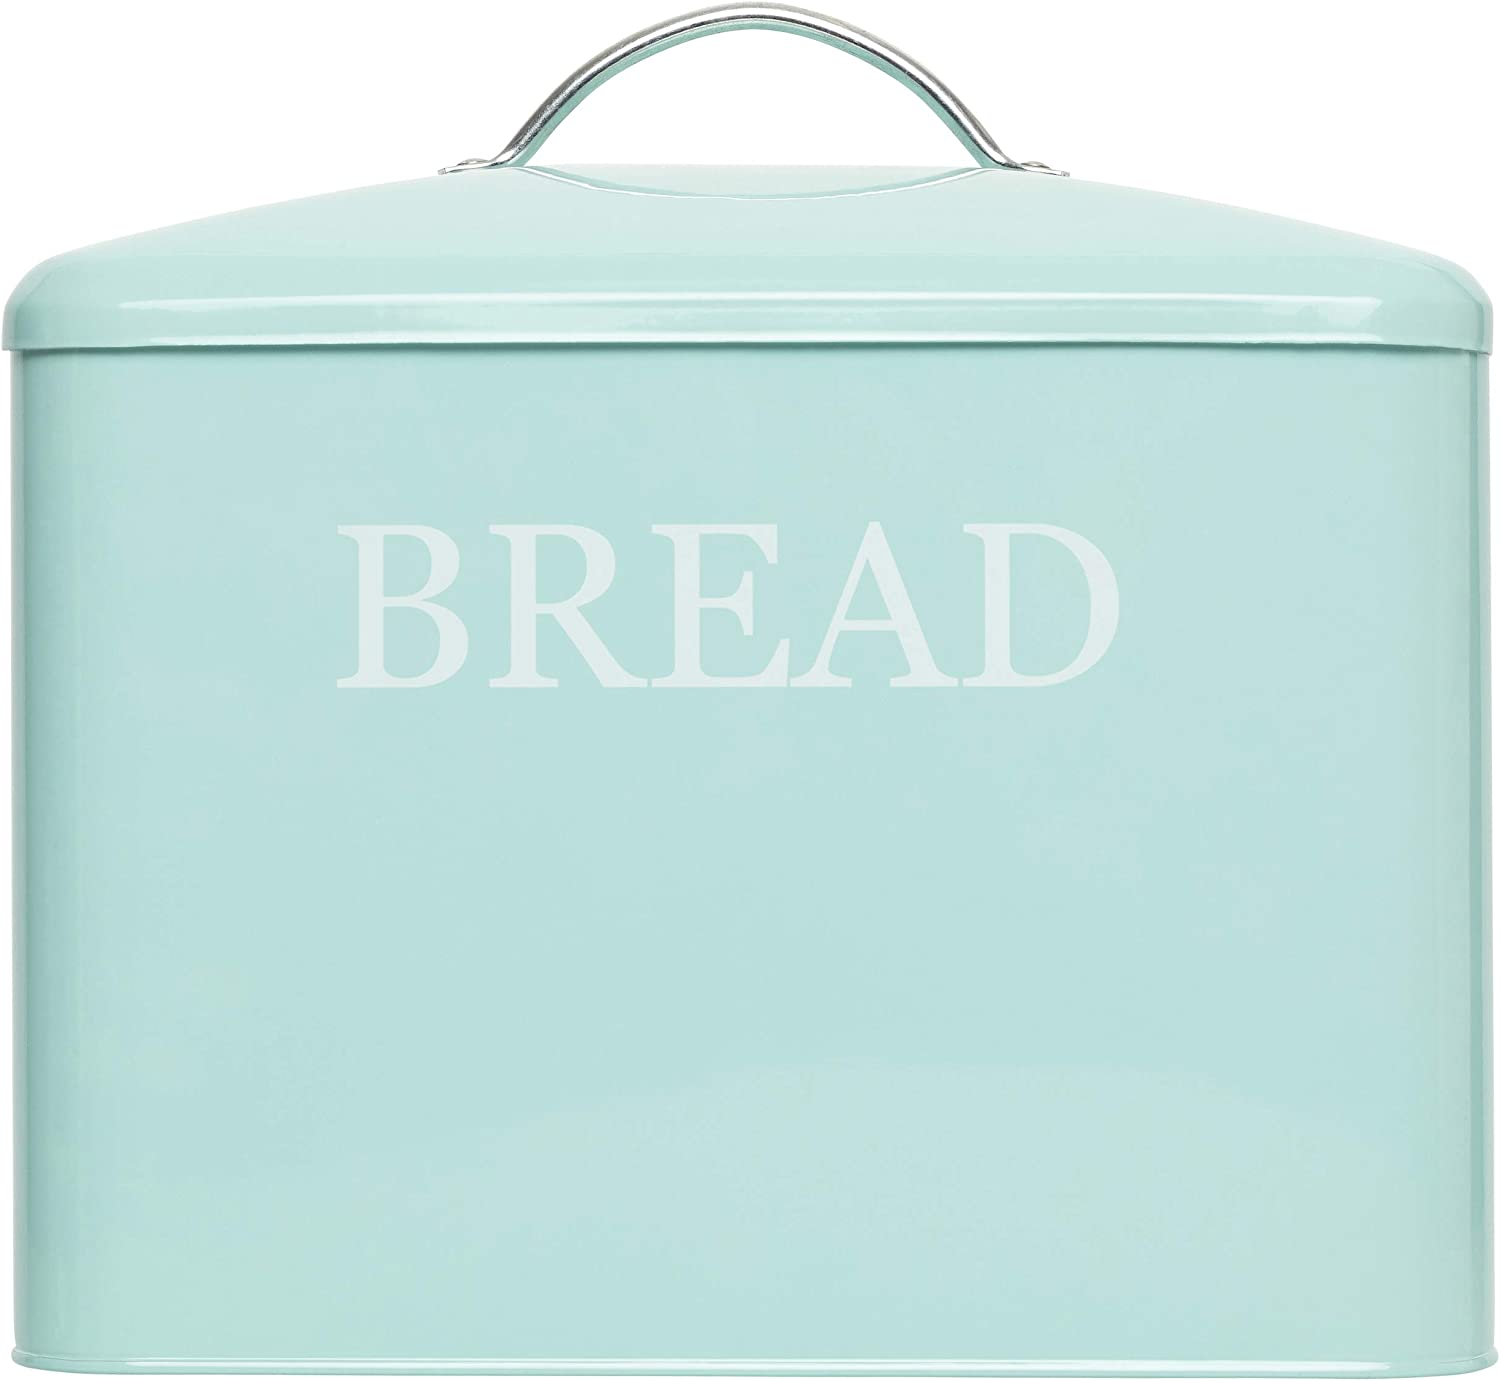 Extra Large Bread Box Teal - Bread Boxes For Kitchen Counter Holds 2+ Loaves For All Your Bread Storage | Bread Container Counter Organizer To Suit Farmhouse Kitchen Decor, Vintage Kitchen, Rustic